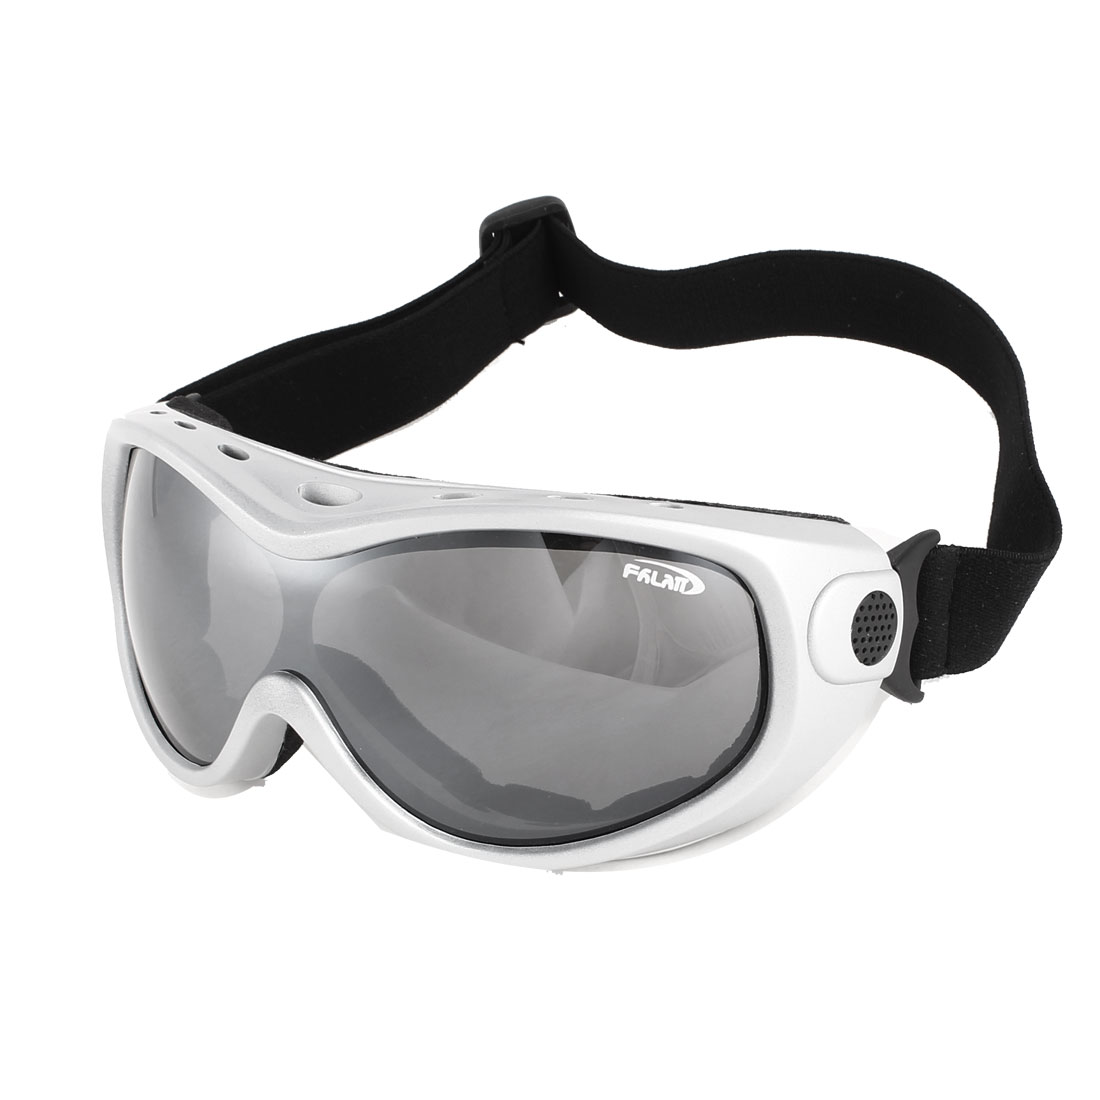 Ladies Men Gray Full Frame Wide Angle Motorcycle Ski Snowboard Goggles